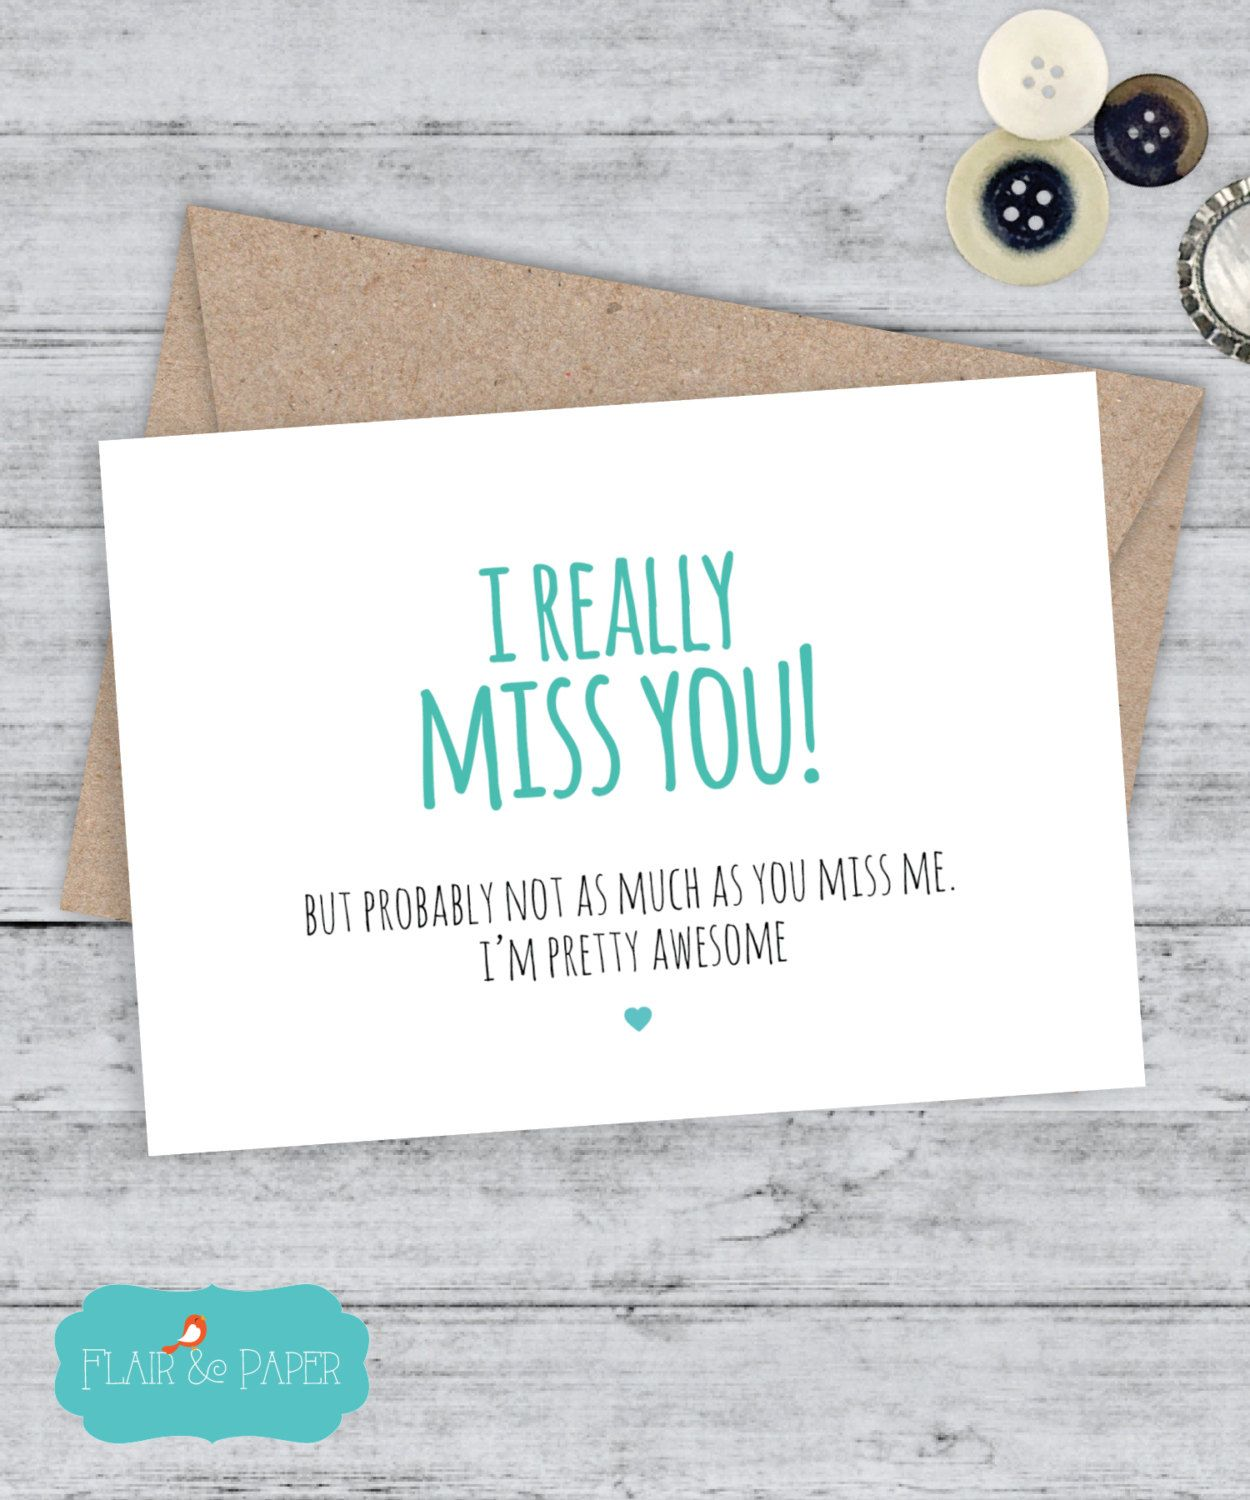 I miss you card boyfriend card funny cards funny i miss you card i miss you card boyfriend card funny cards funny i miss you card snarky sassy greeting kristyandbryce Image collections